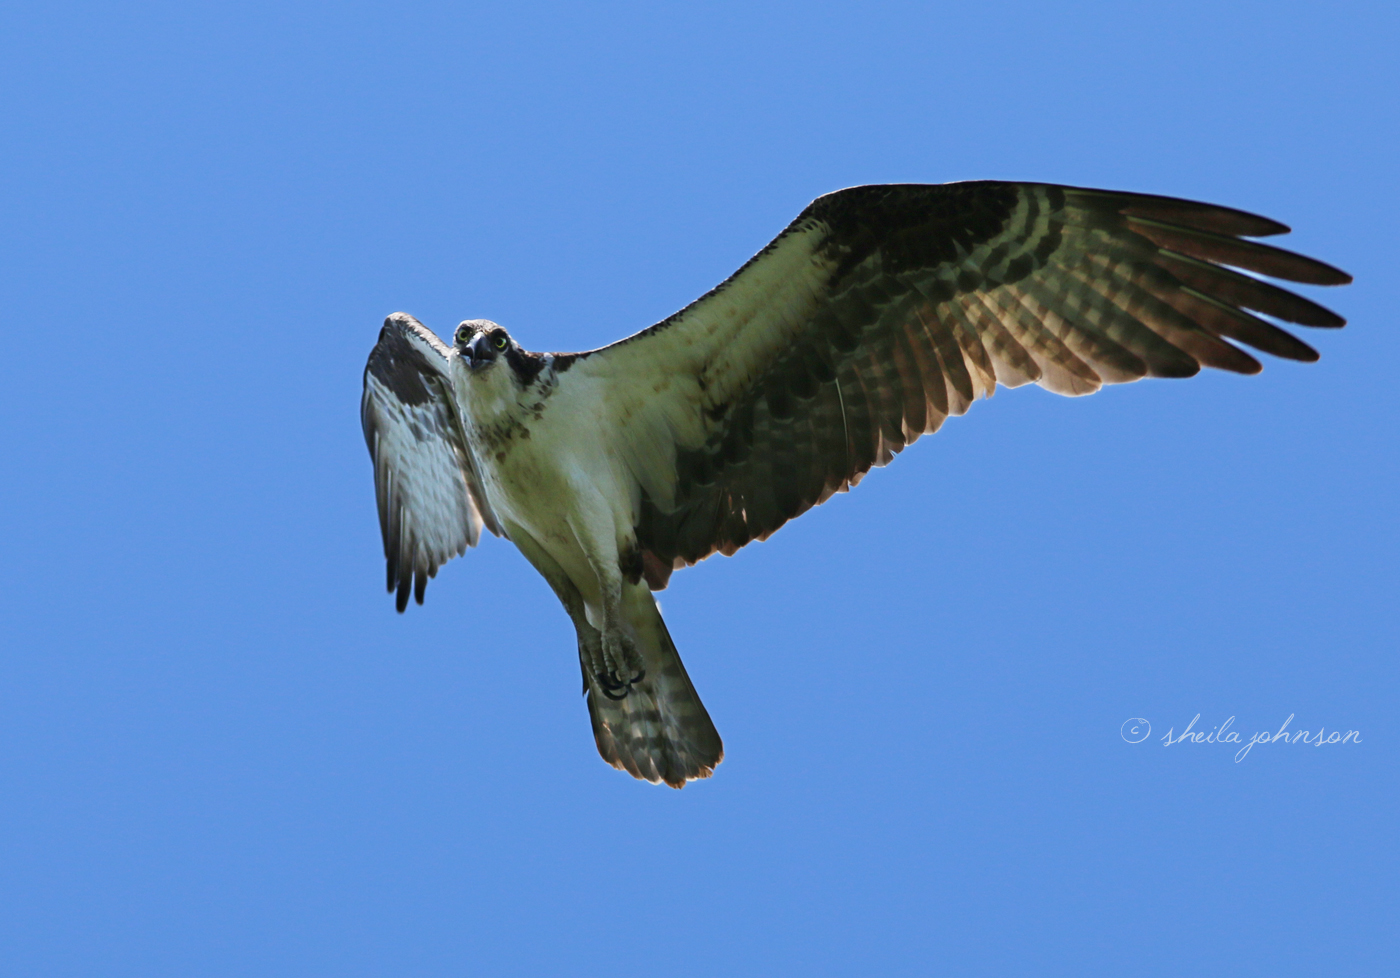 I Know She's Angry With Me For Being Near Her Osprey Offspring, But I Am Enamored Of Her And Happy To Click A Thousand Clicks, If She Will Just Keep Flying By.